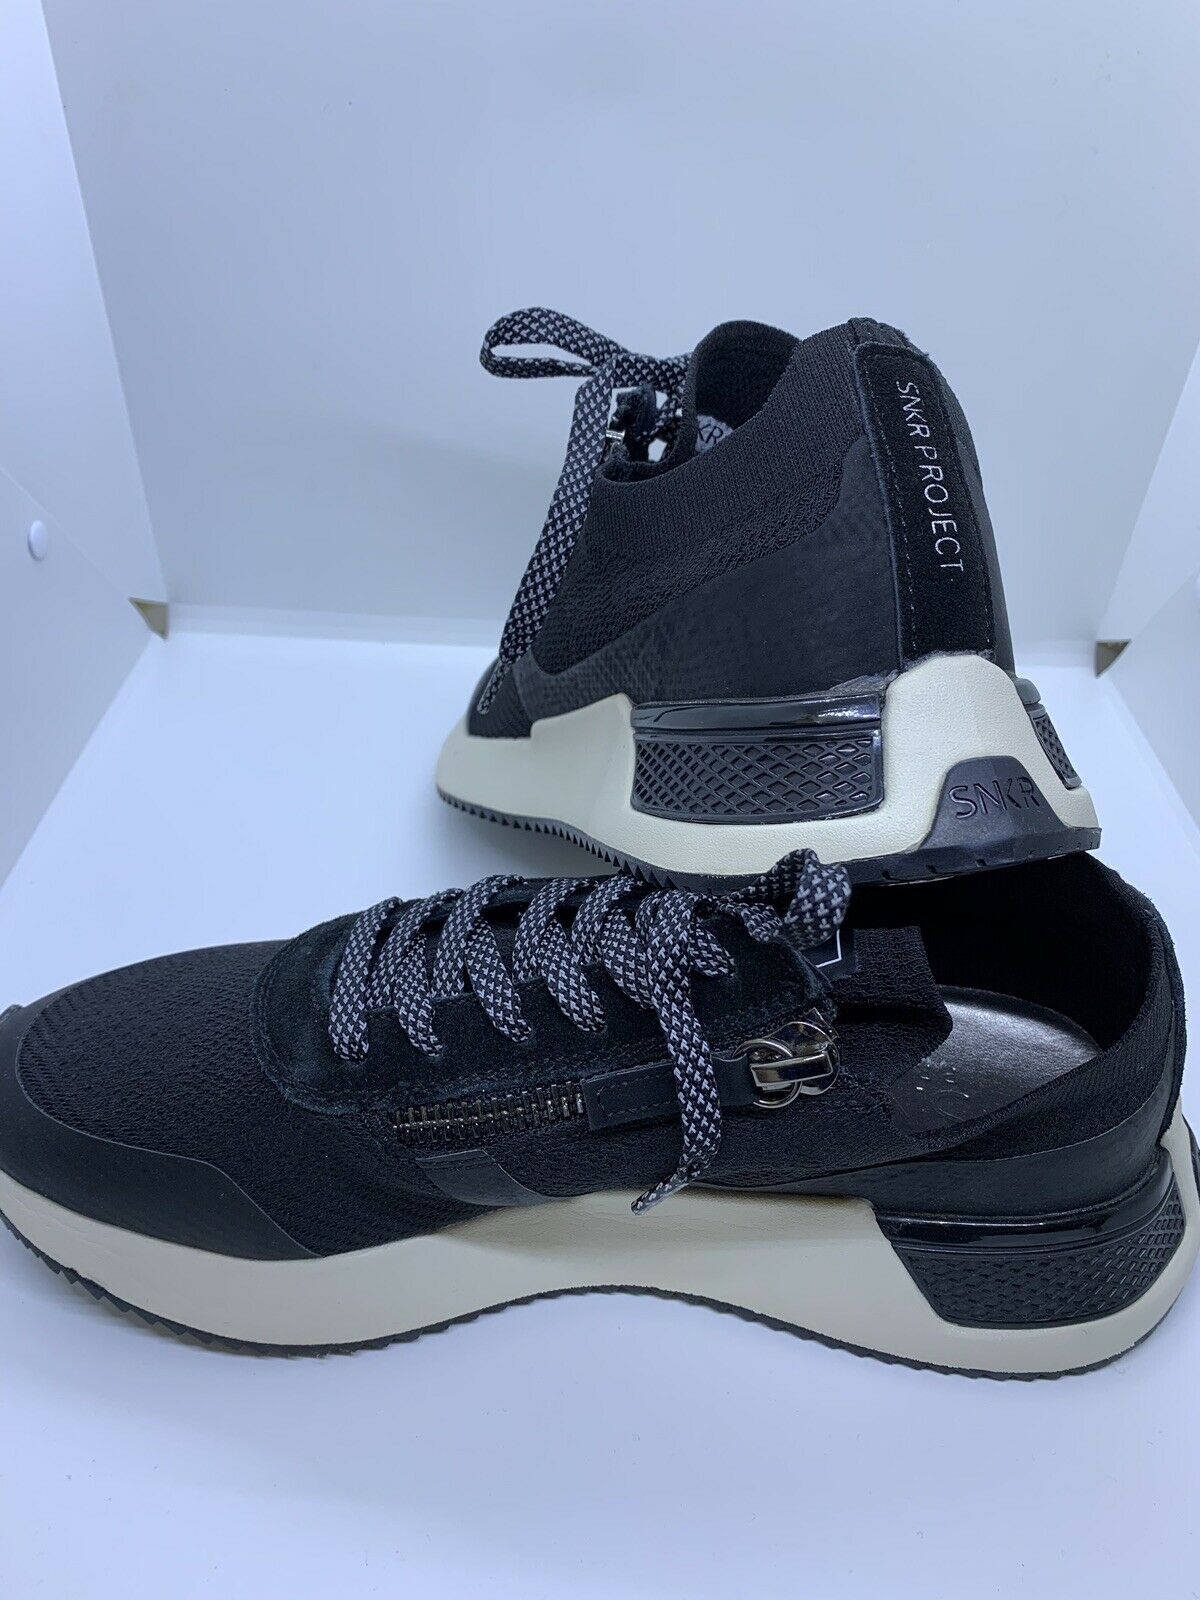 SNKR PROJECT MENS CASUAL SNEAKER - Size 9